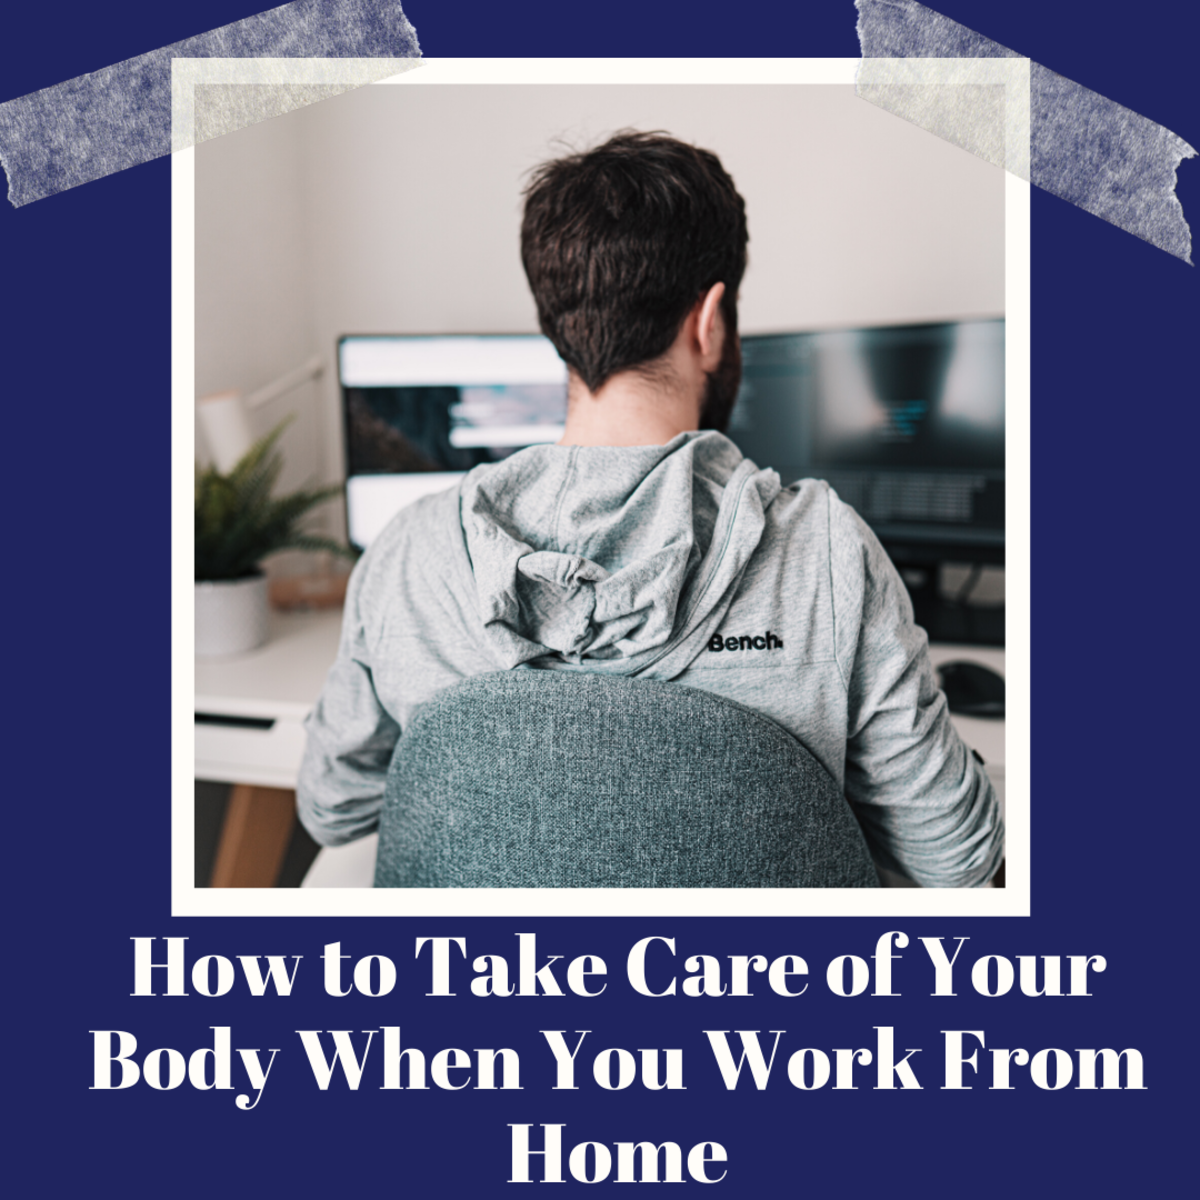 If you work from home, make sure you take care of your body and mind.